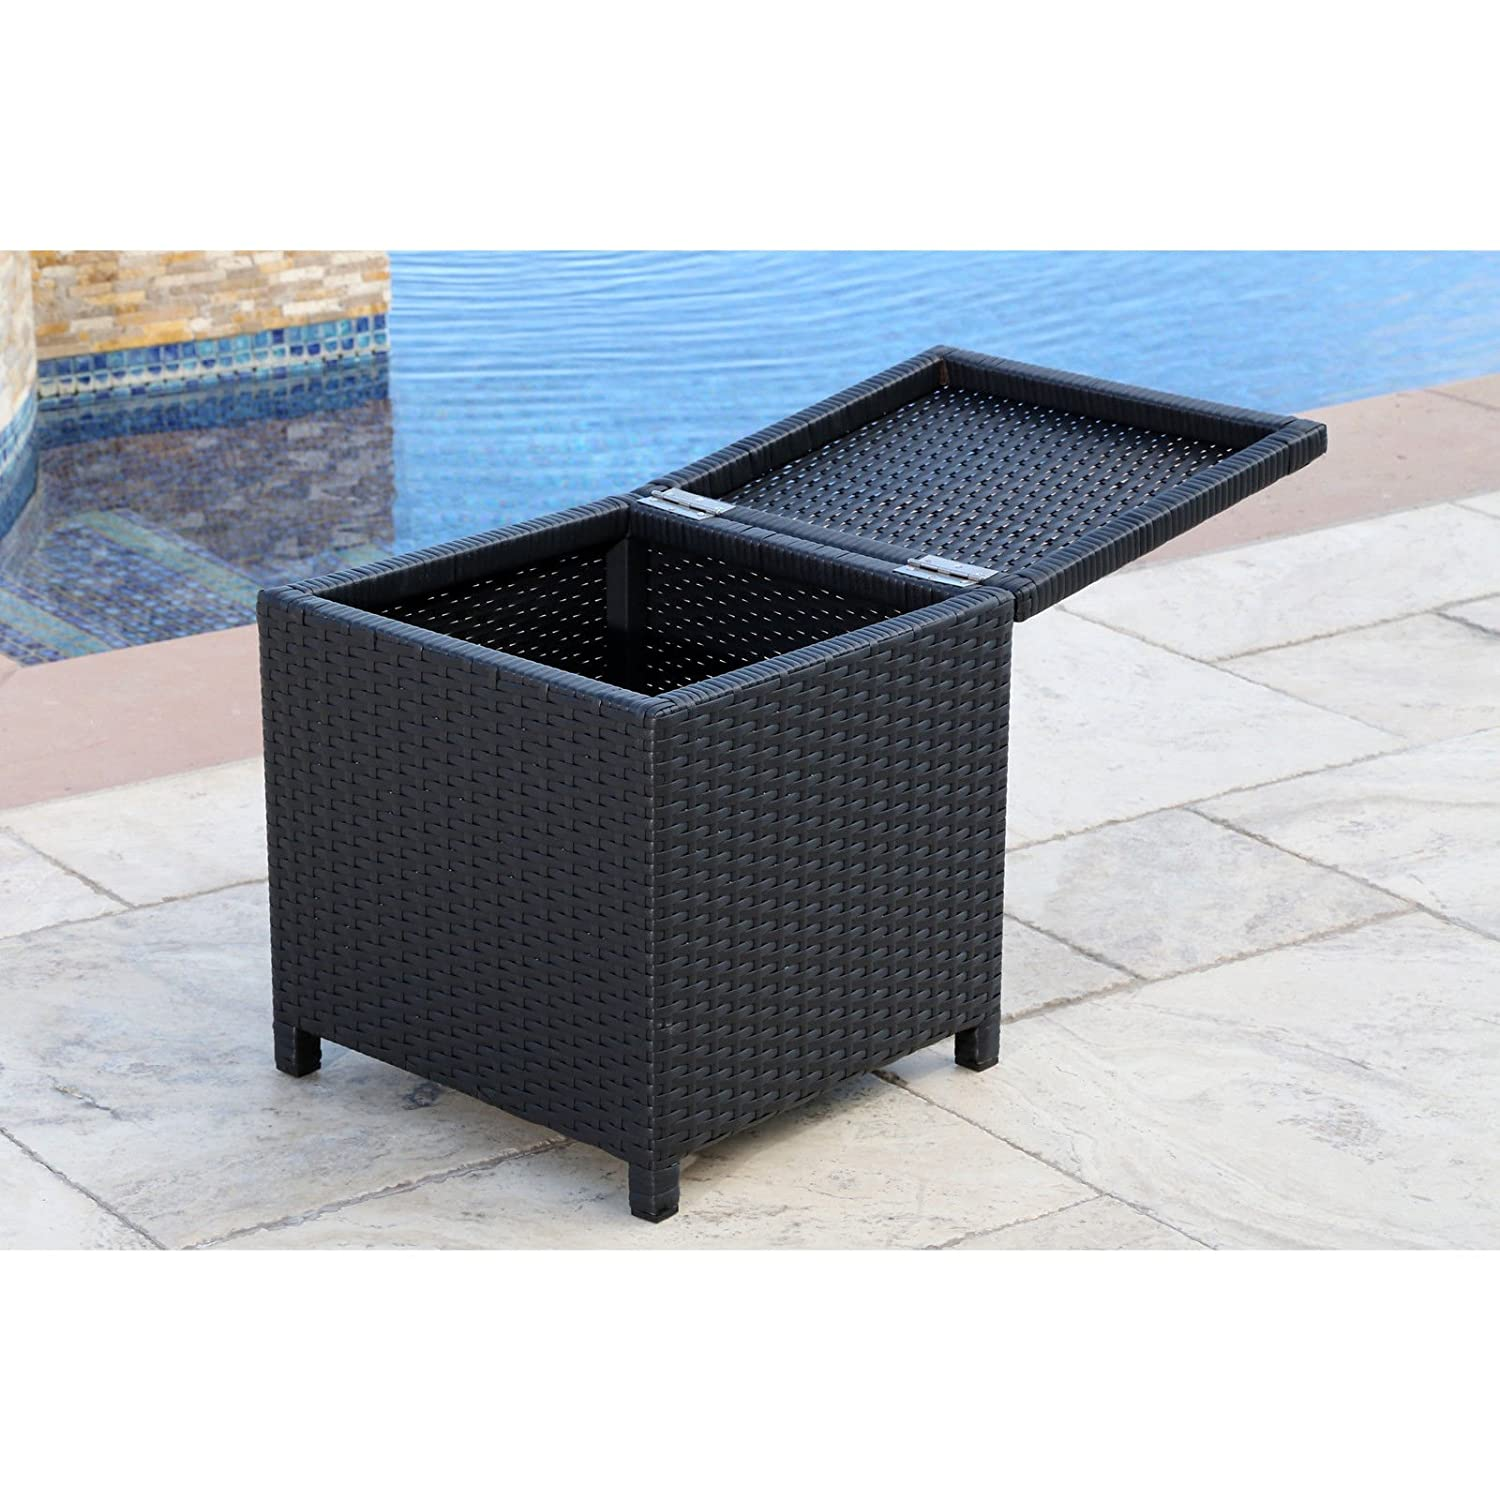 Amazon.com : Abbyson Living Newport Outdoor Black Wicker Storage Ottoman  For Patio Pool : Garden U0026 Outdoor